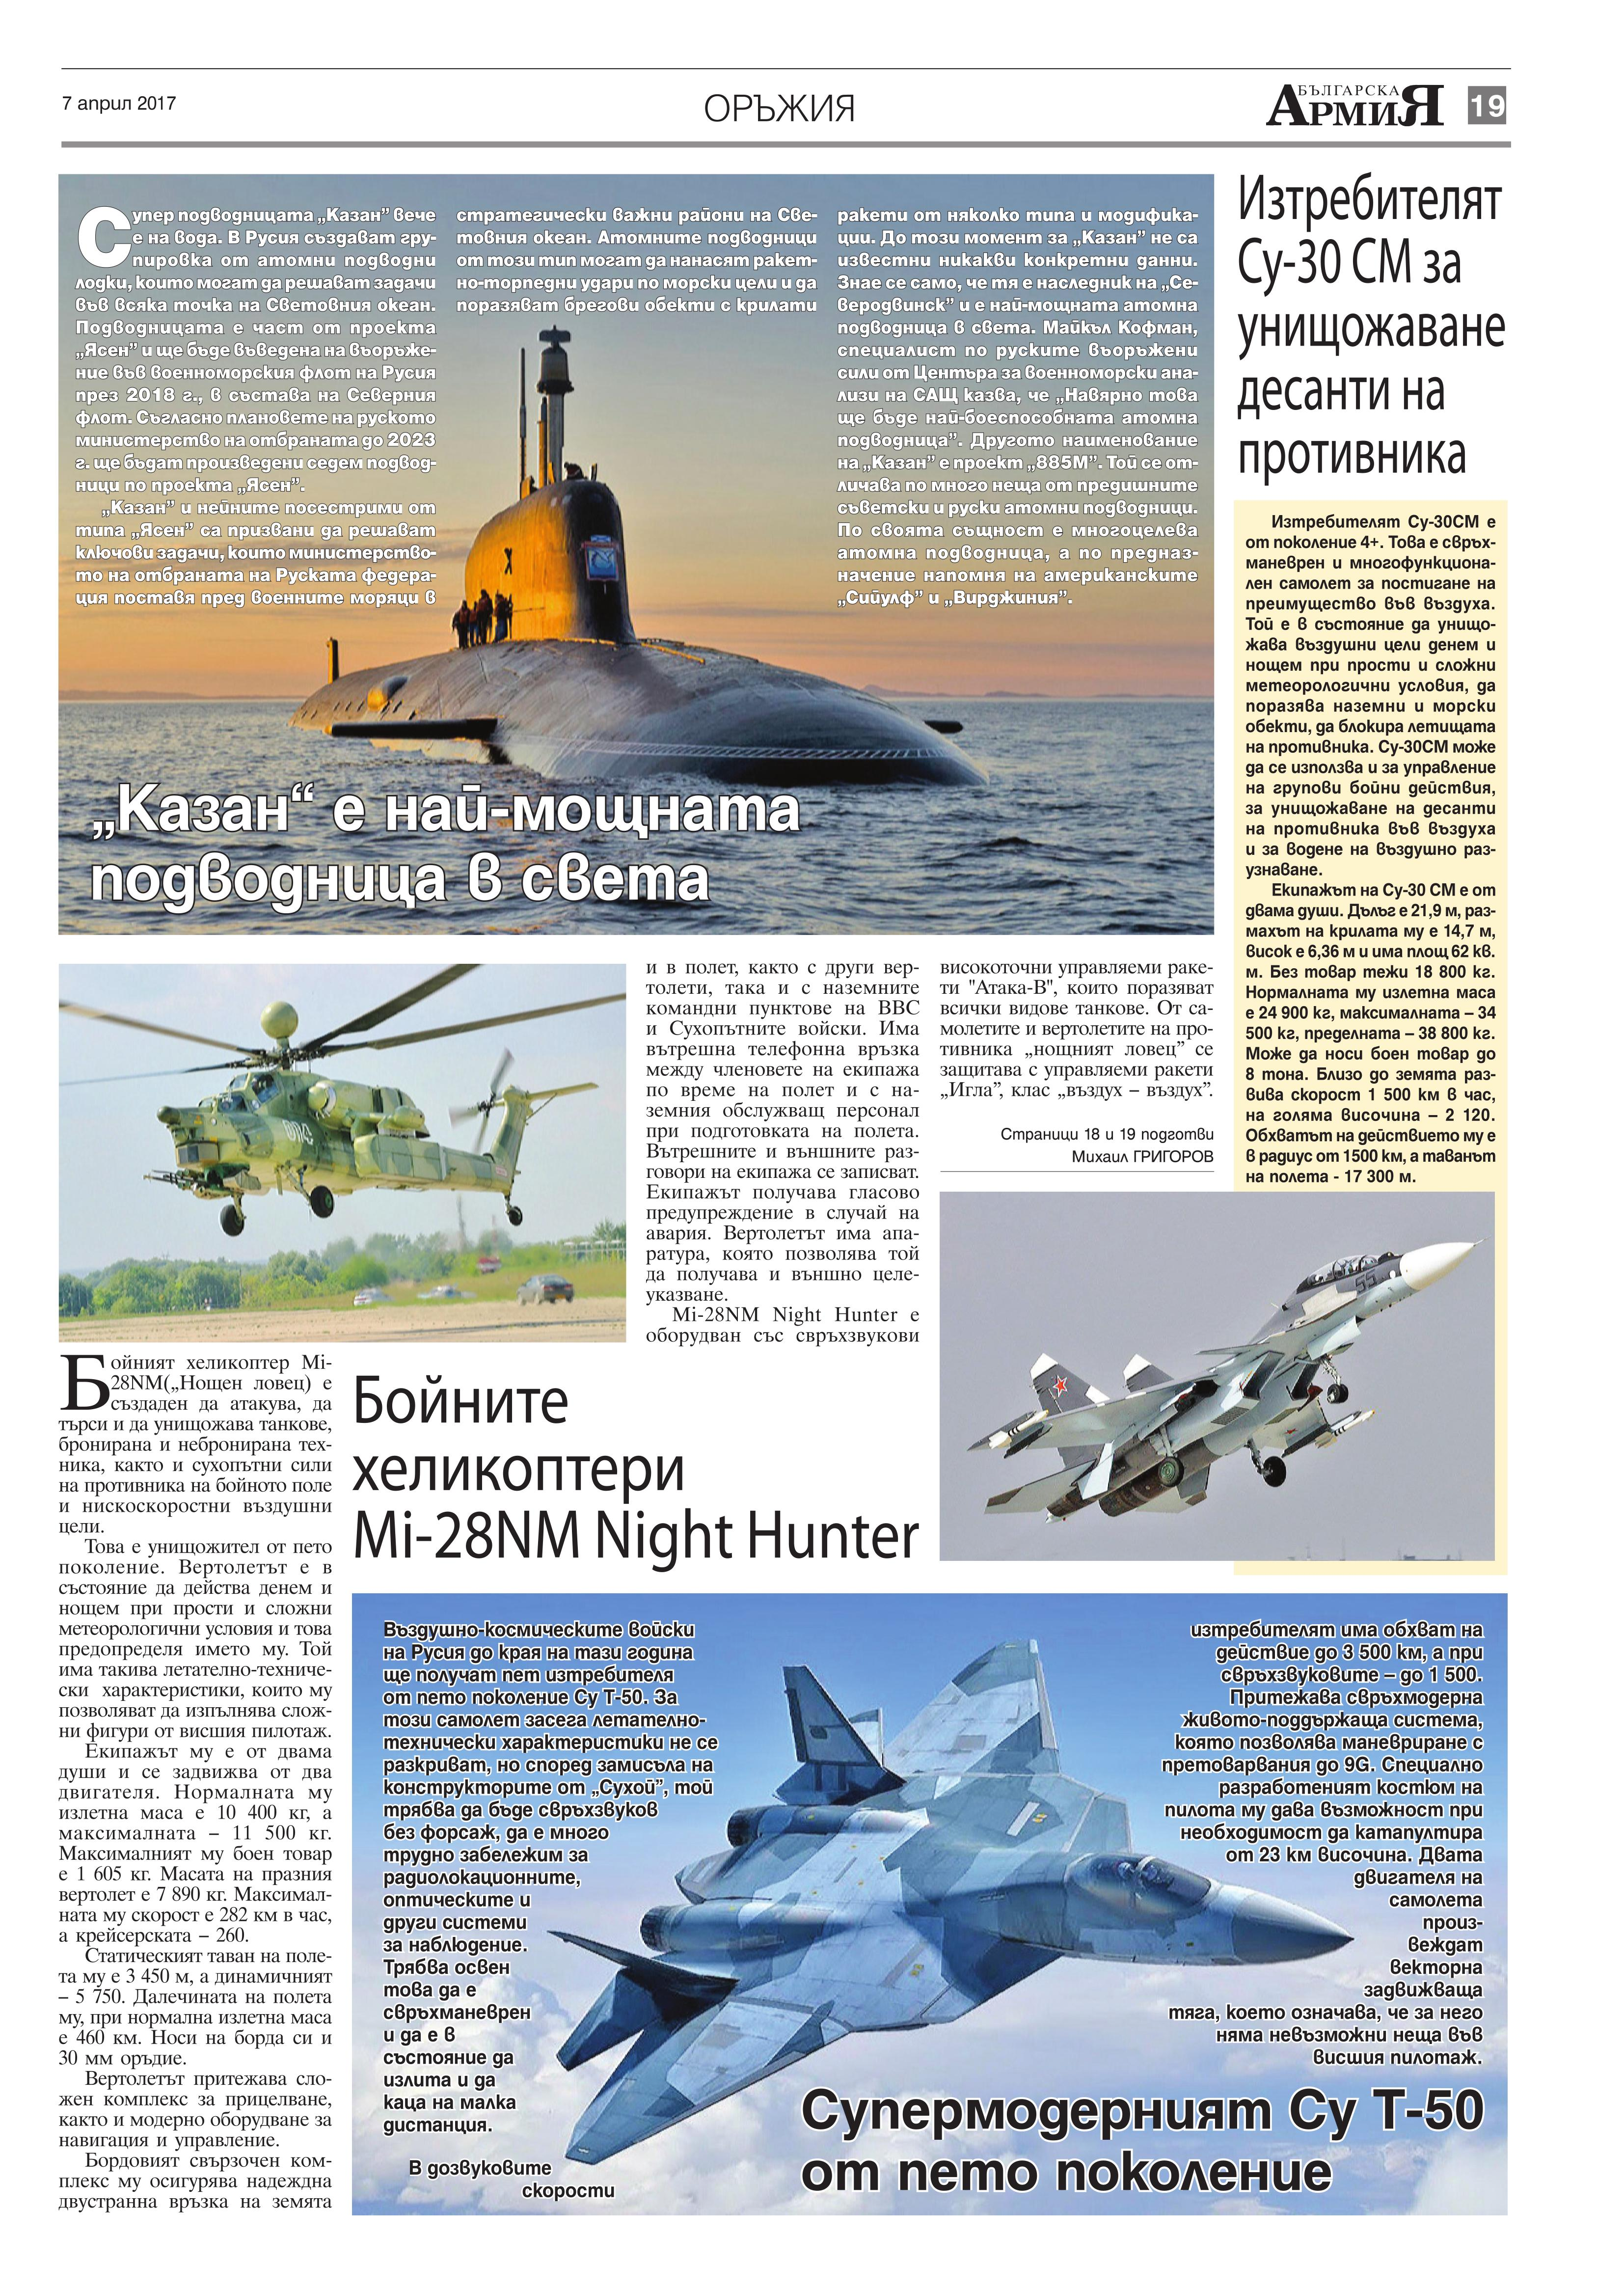 https://www.armymedia.bg/wp-content/uploads/2015/06/19.page1_-18.jpg